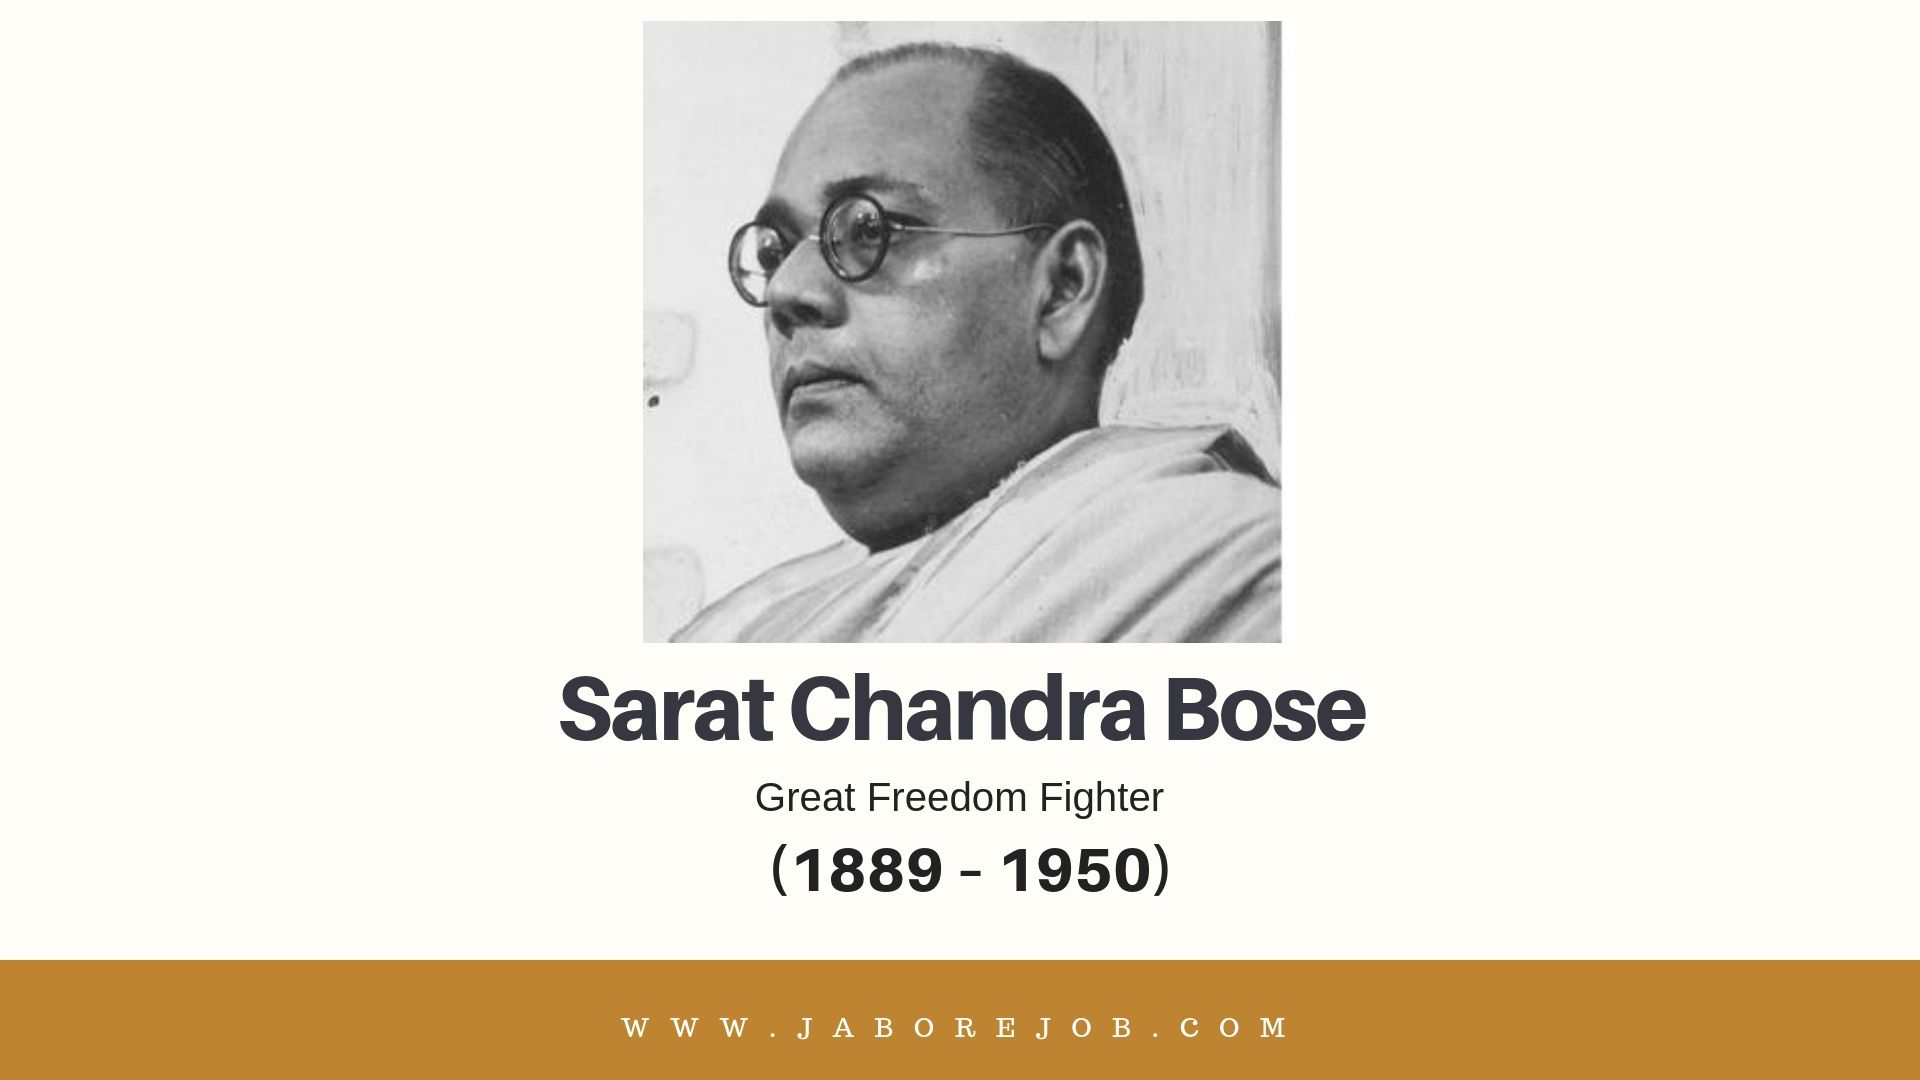 sarat chandra bose, sarat chandra bose information, sarat chandra bose biography, sarat chandra bose wife, janakinath bose, prabhabati bose, role of sarat chandra bose in indian constitution, sarat chandra bose bengal protest, sarat chandra bose facts